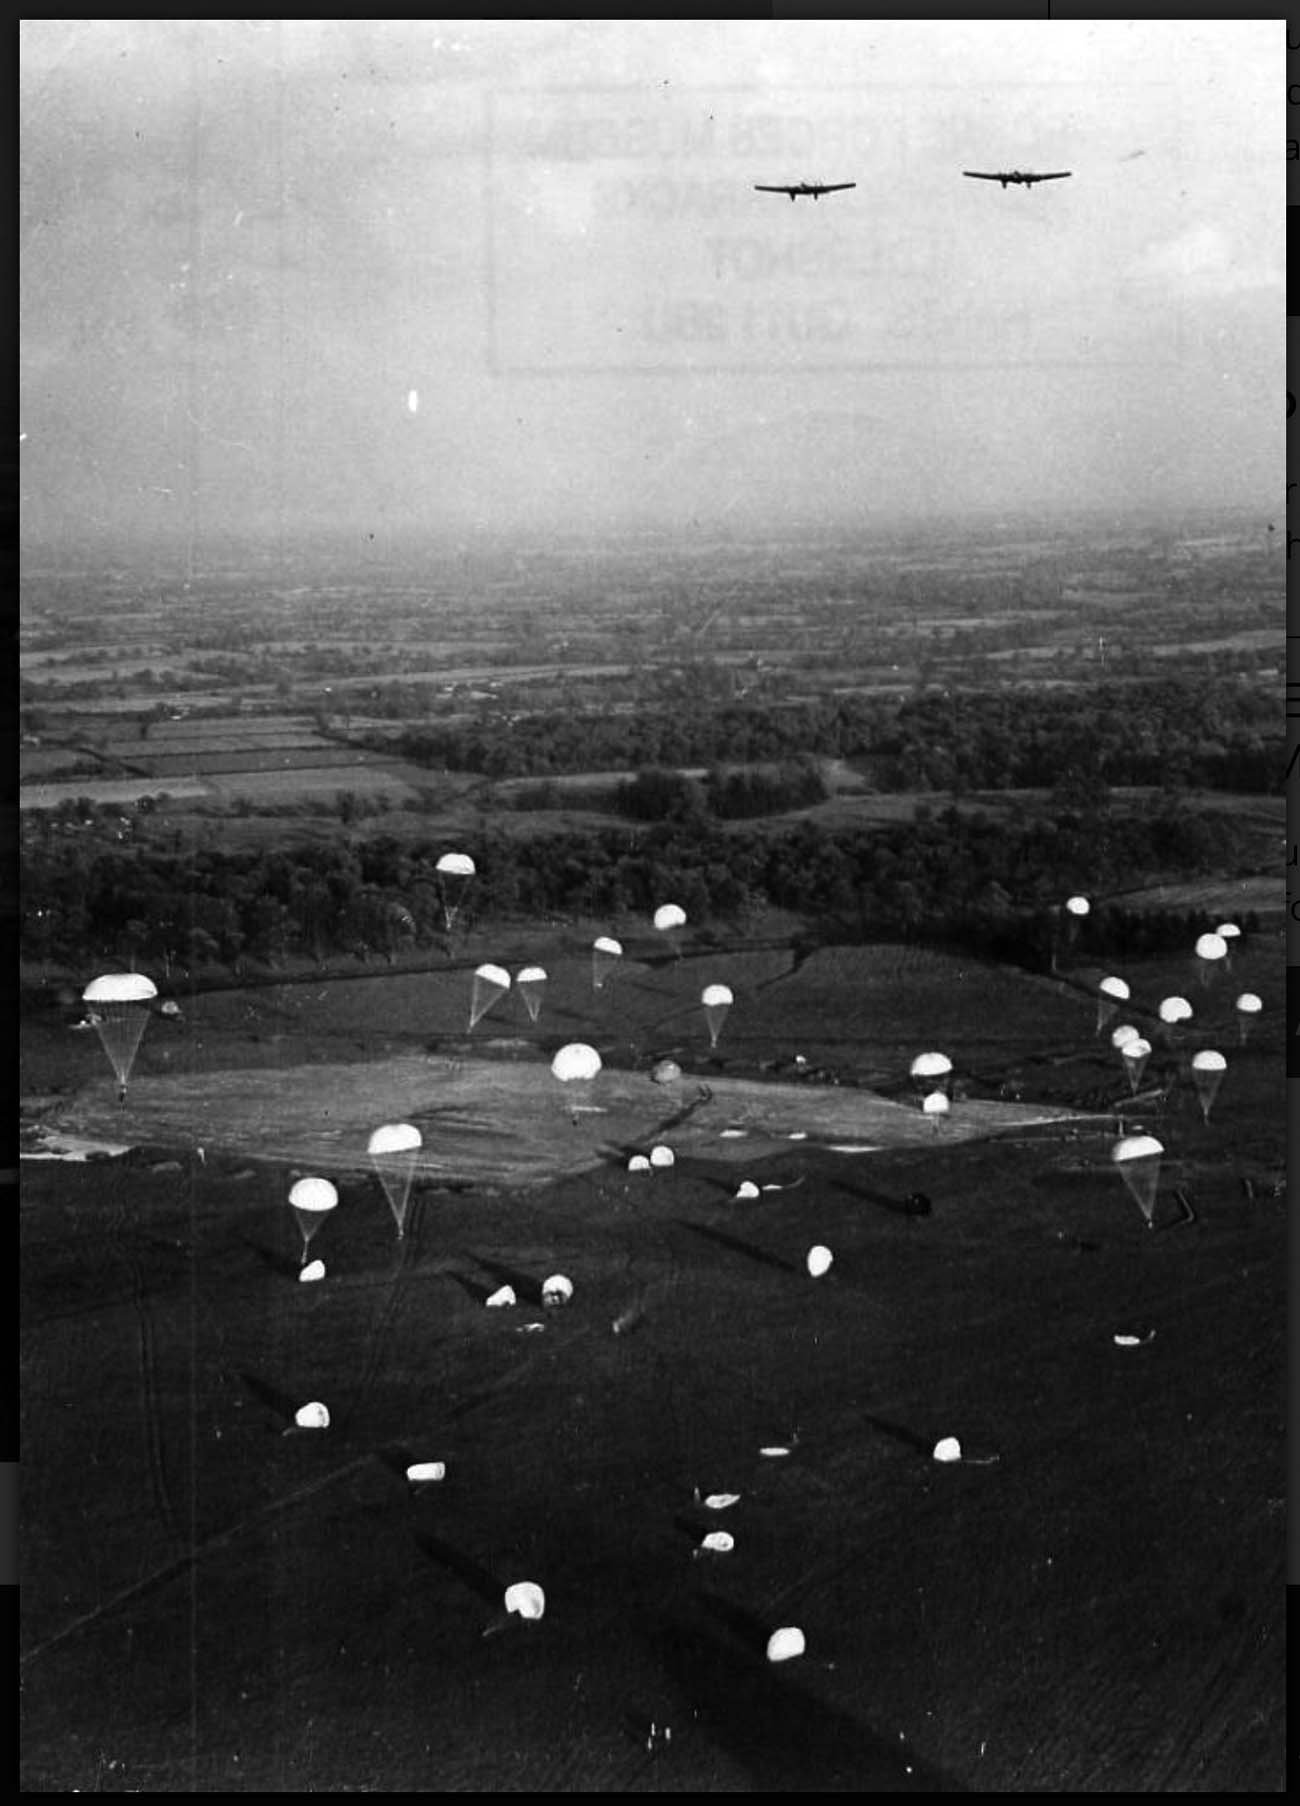 an aerial photo of parachutes floating to the ground